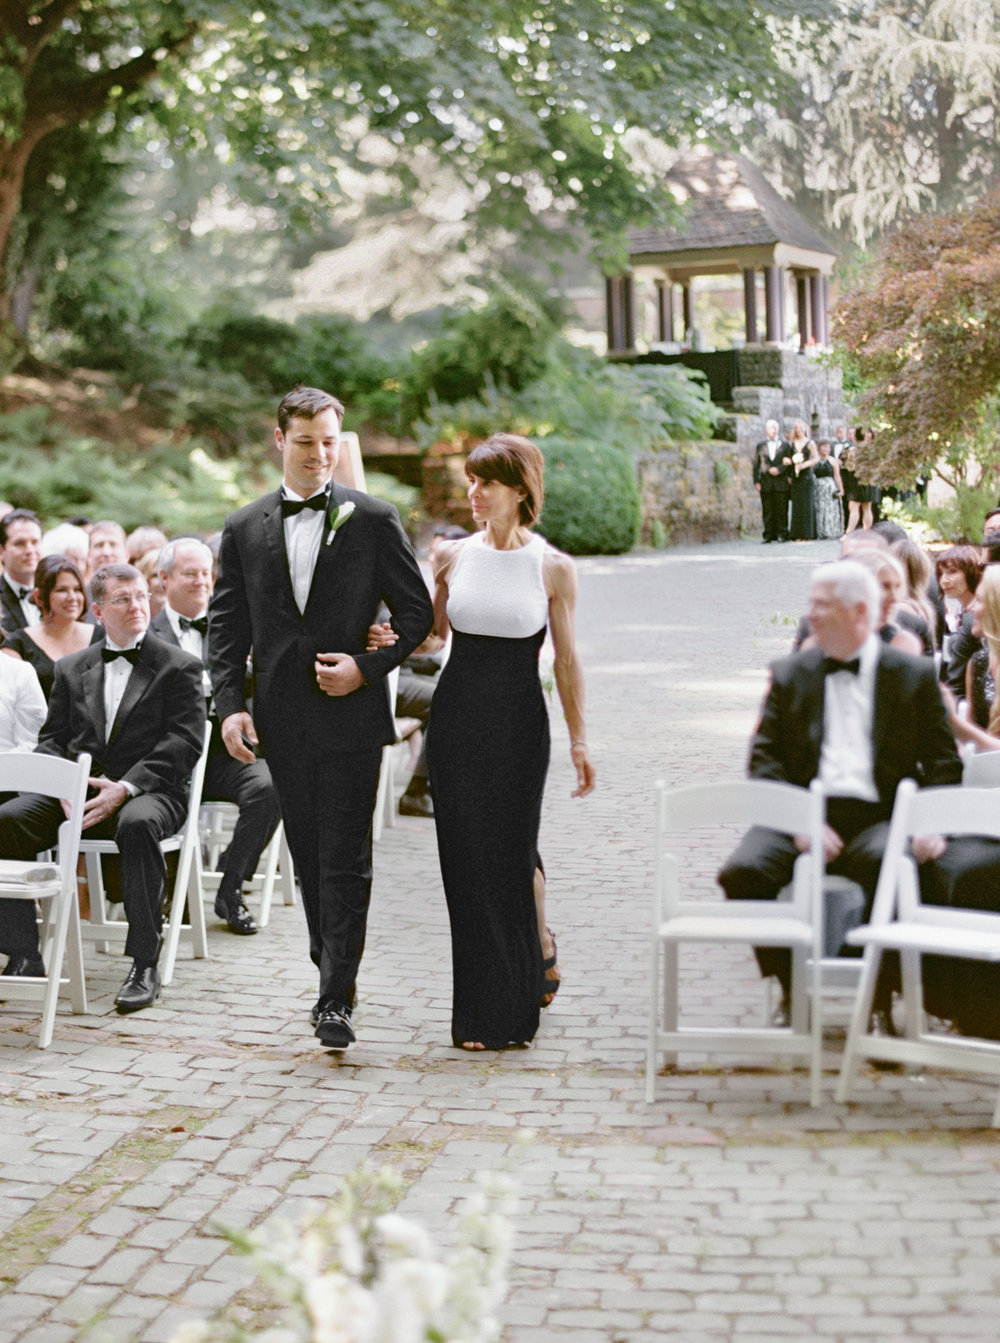 124OutliveCreative_Travel_Photographer_Videographer_Lewis&Clark_Oregon_Elegant_BlackTie_Destination_Wedding.jpg